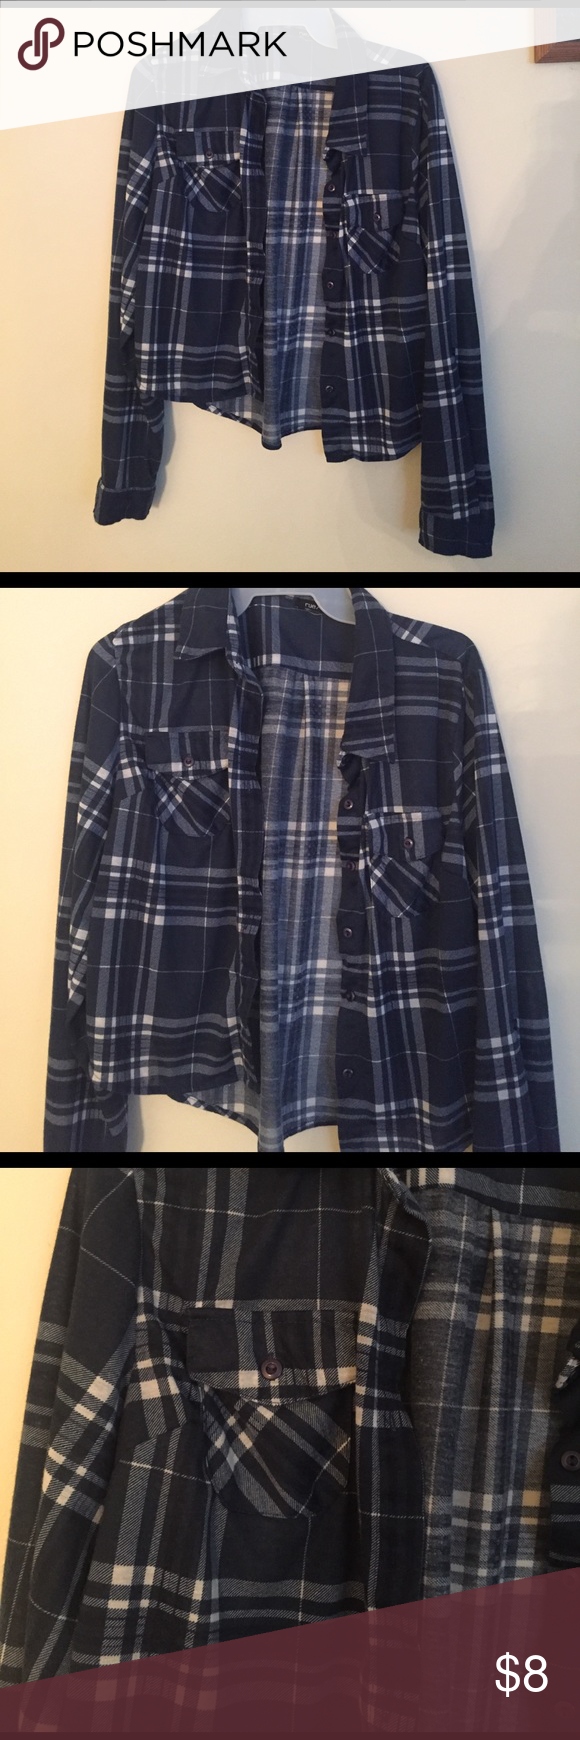 Rue21 Navy Blue and White Cropped Plaid Shirt Rue21 Blue and White Cropped Plaid Flannel. Buttons up. Super cute. Size Large. Like new, worn once Rue21 Tops Button Down Shirts